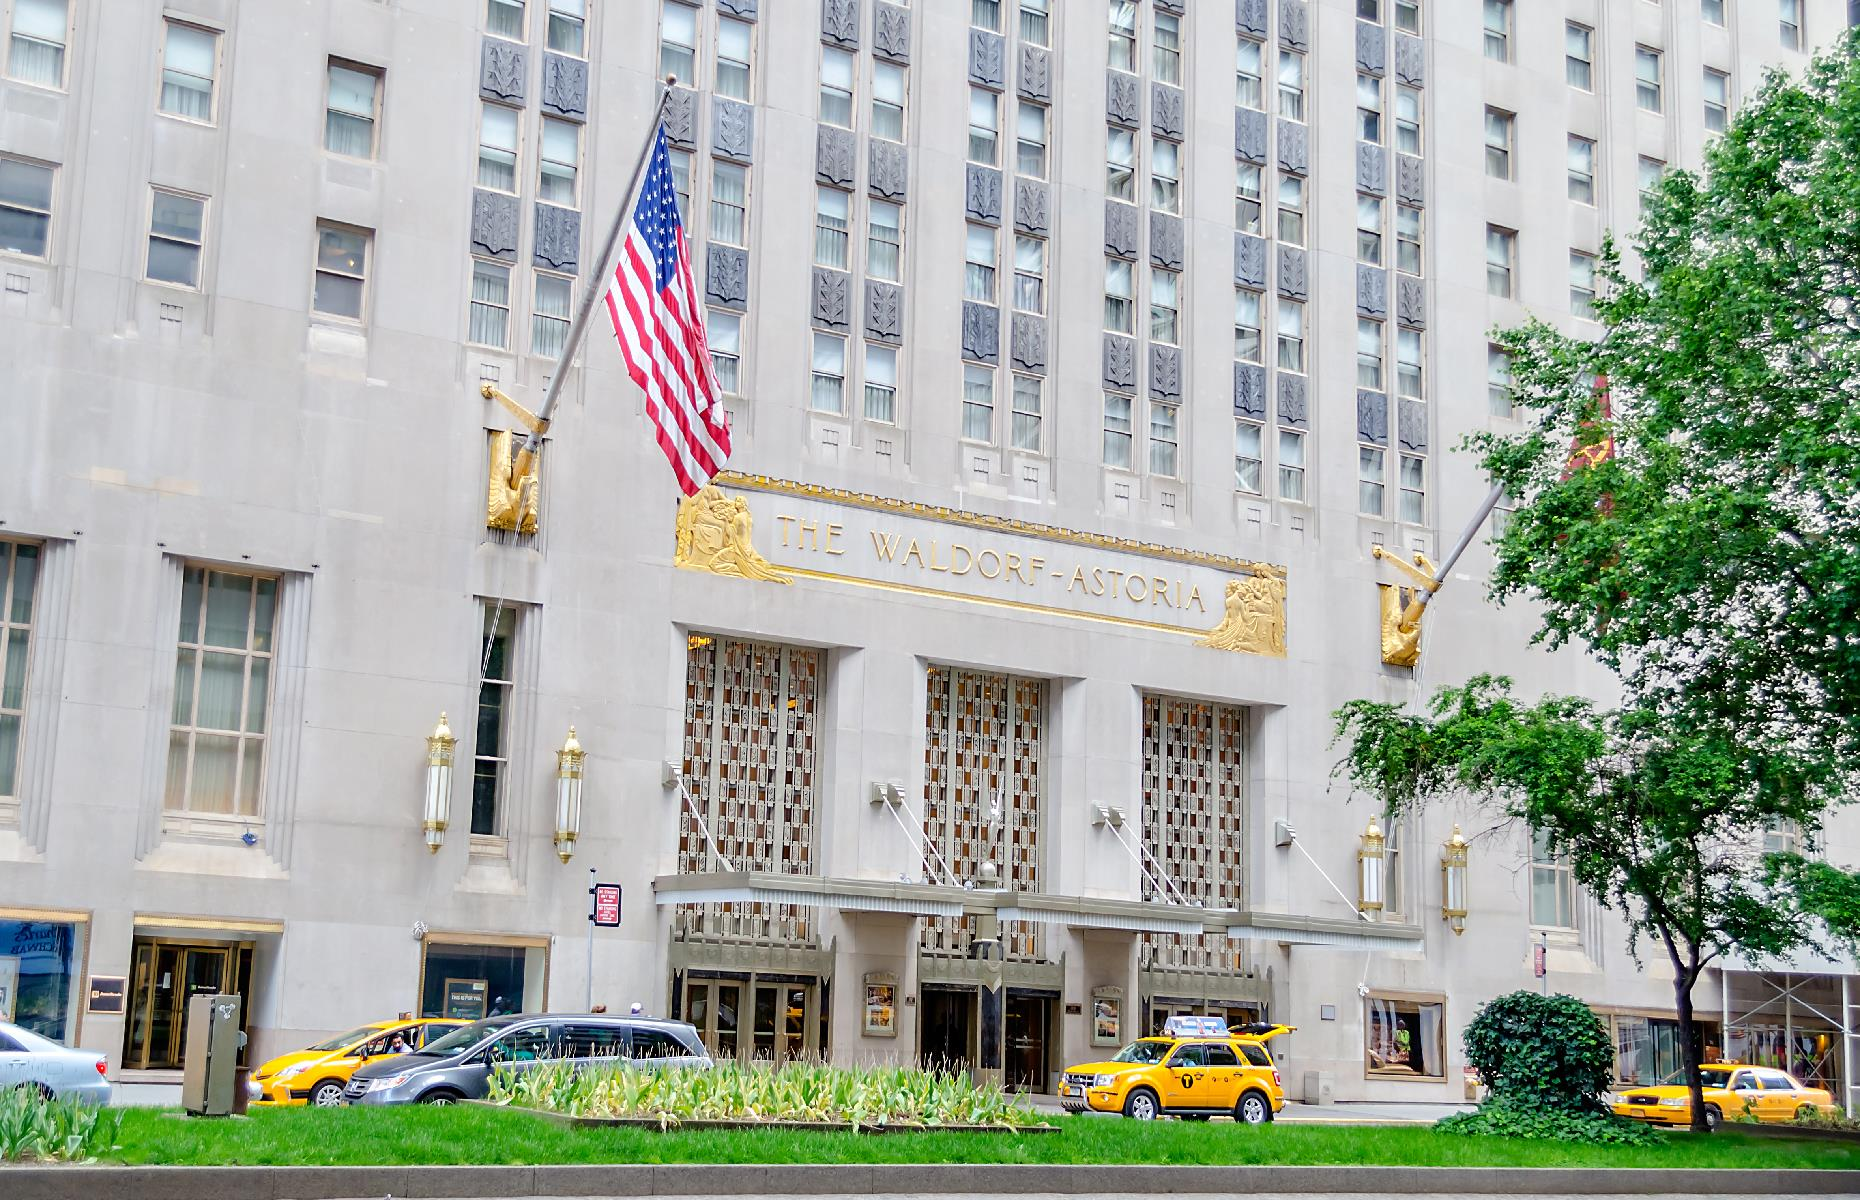 Slide 2 of 31: Most visitors to New York know Waldorf Astoria as a swanky hotel dripping in old-school luxury. But, beyond its chandeliers, vaulted corridors and uber-luxe lobby, the hotel hides a secret or two – not least the train station that exists beneath its plushly carpeted floors. It has become known as Track 61 and was used by VIPs, including President Franklin D. Roosevelt, who purportedly wanted to hide his polio disease. There are rumors that the station is still occasionally used today too.